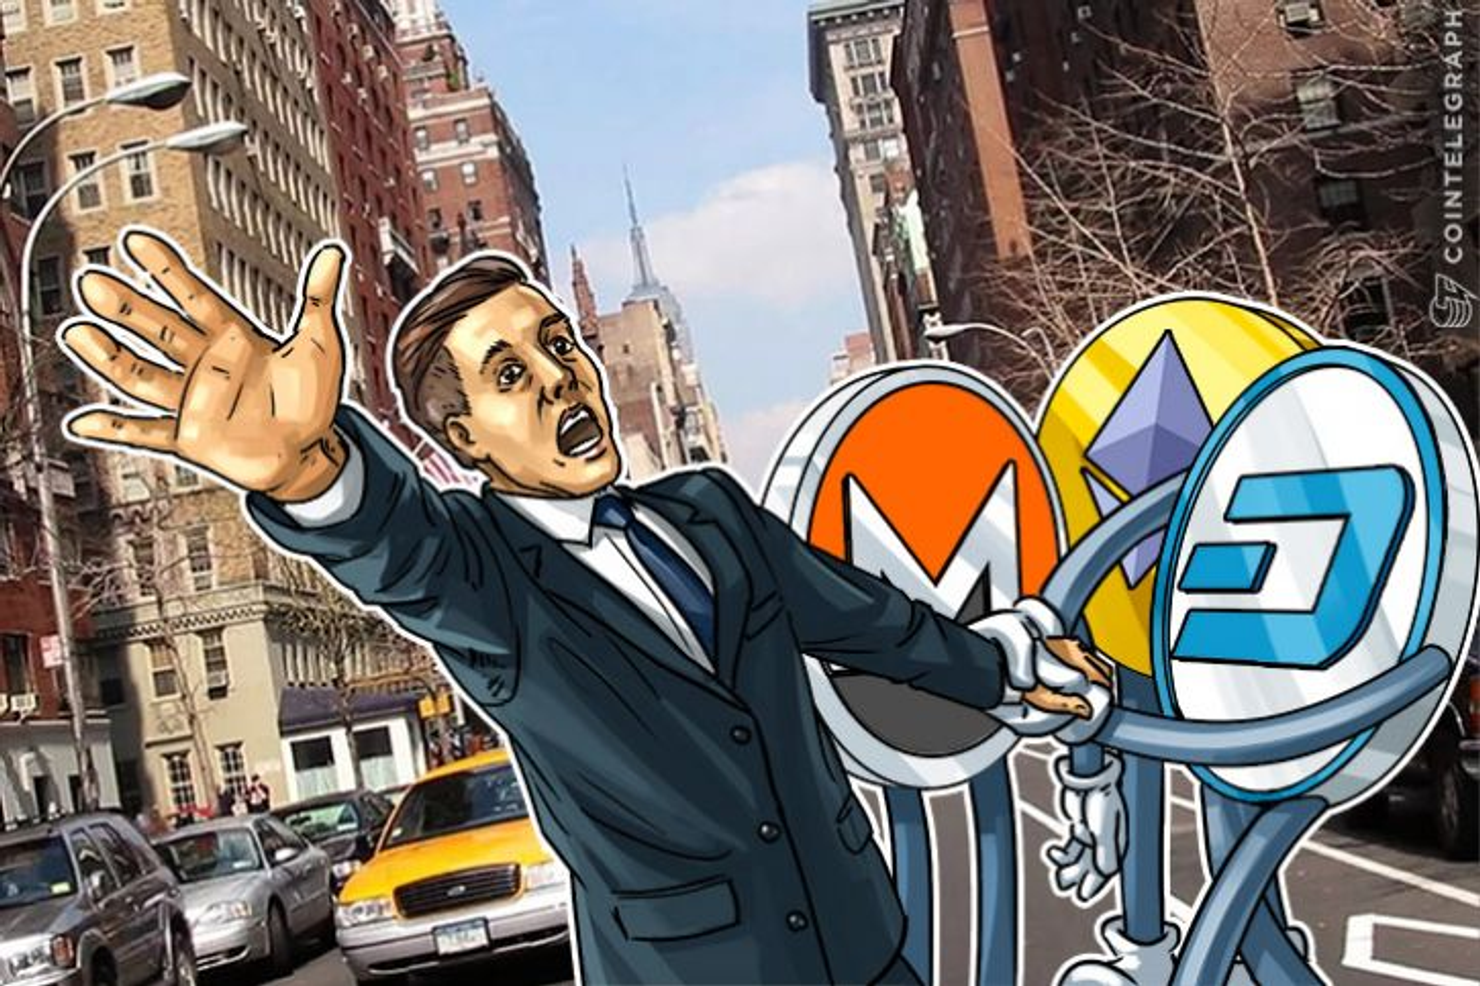 New Survey Shows Around 26 Mln Americans Own - And 8 Percent Plan To Buy - Cryptocurrencies